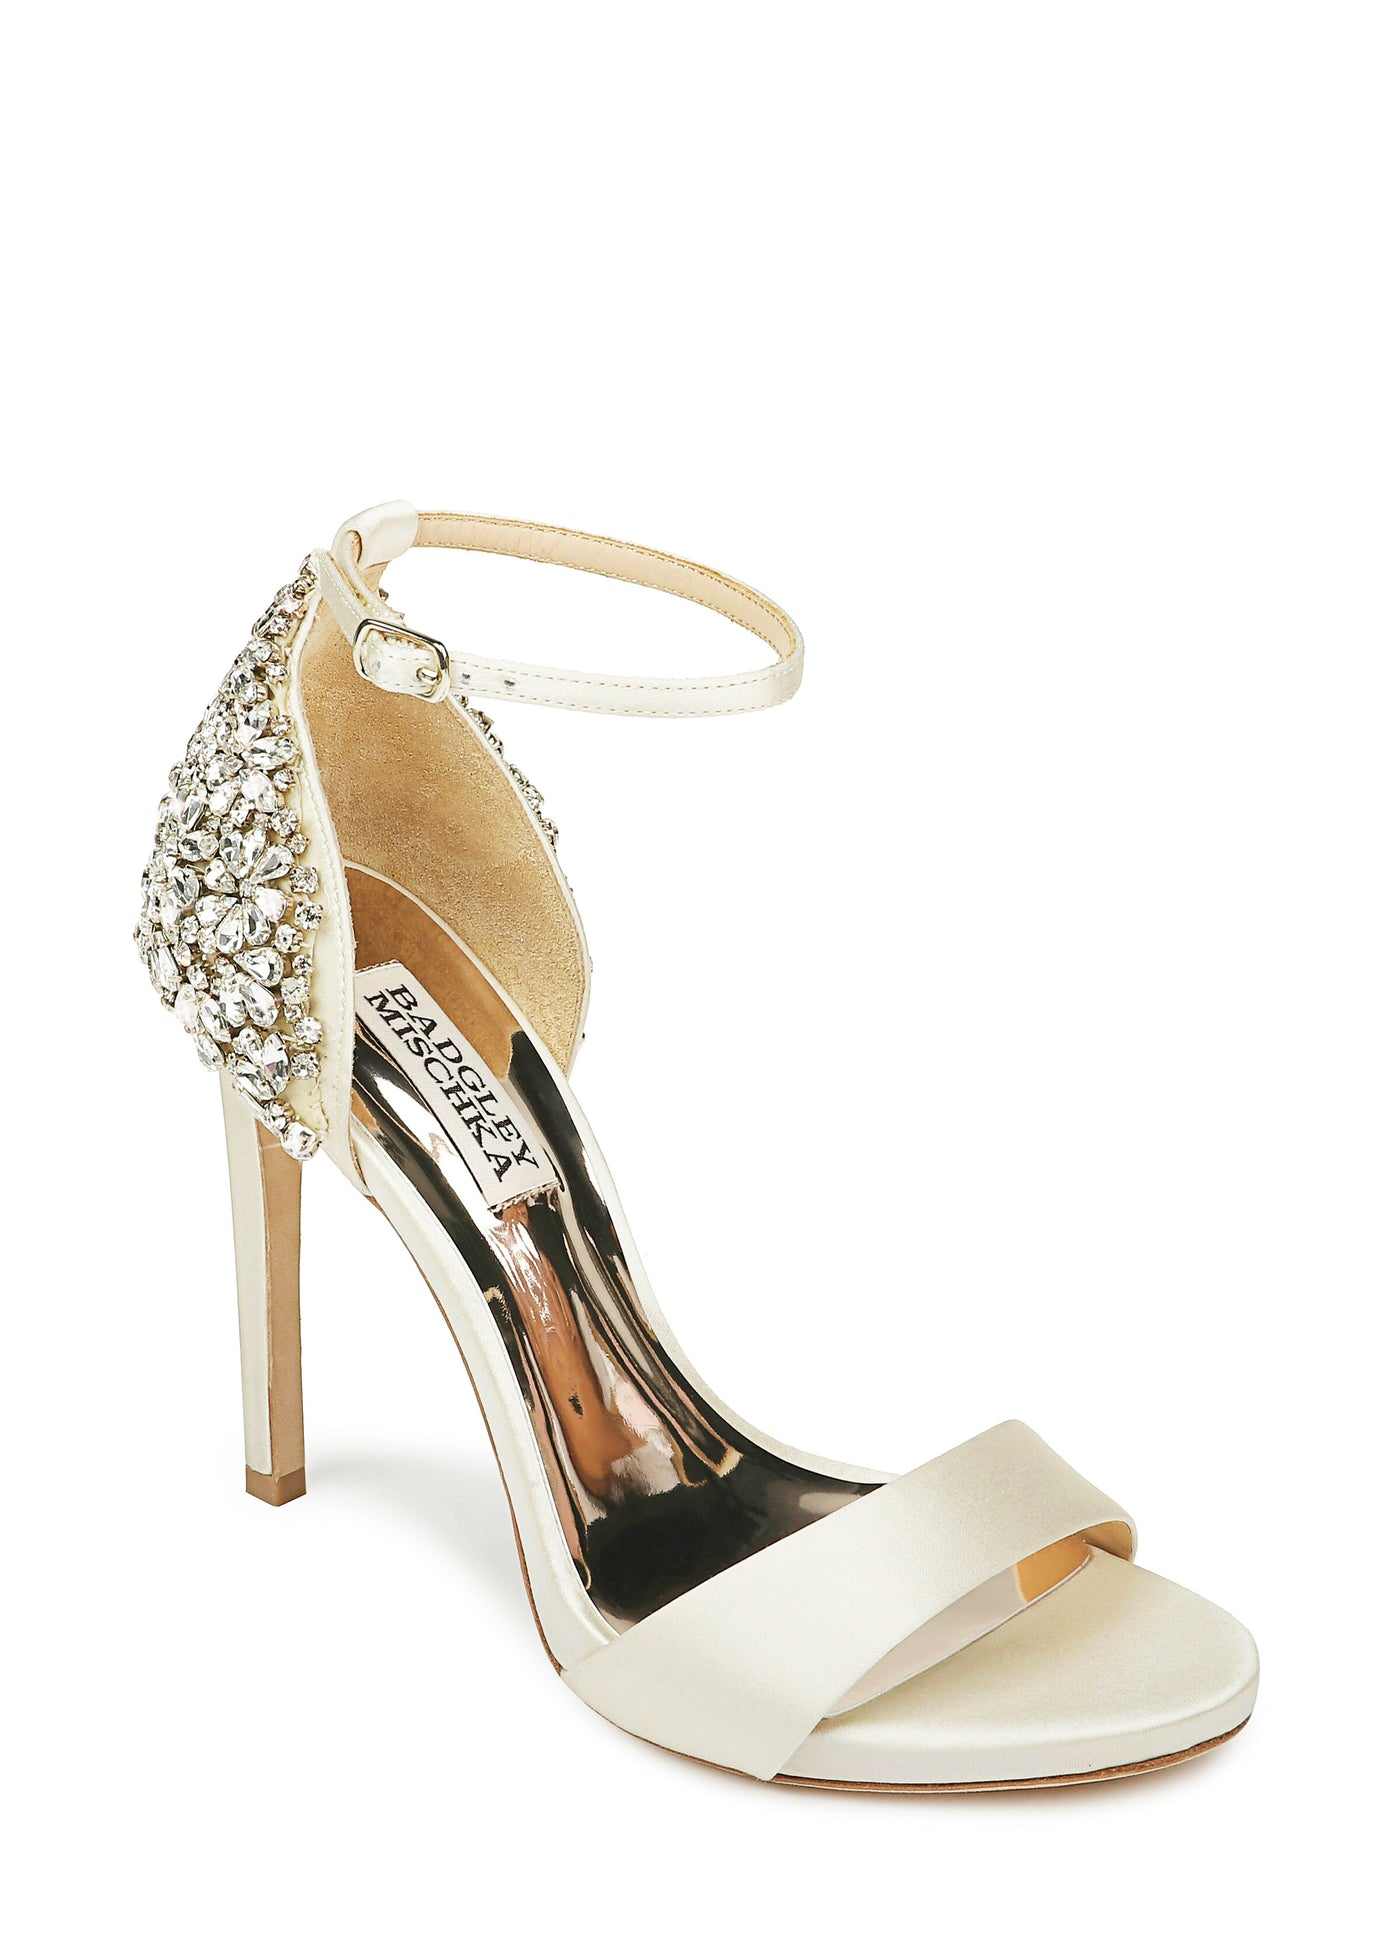 Eleanor - Coming Soon, Shoes, Badgley Mischka - Eternal Bridal